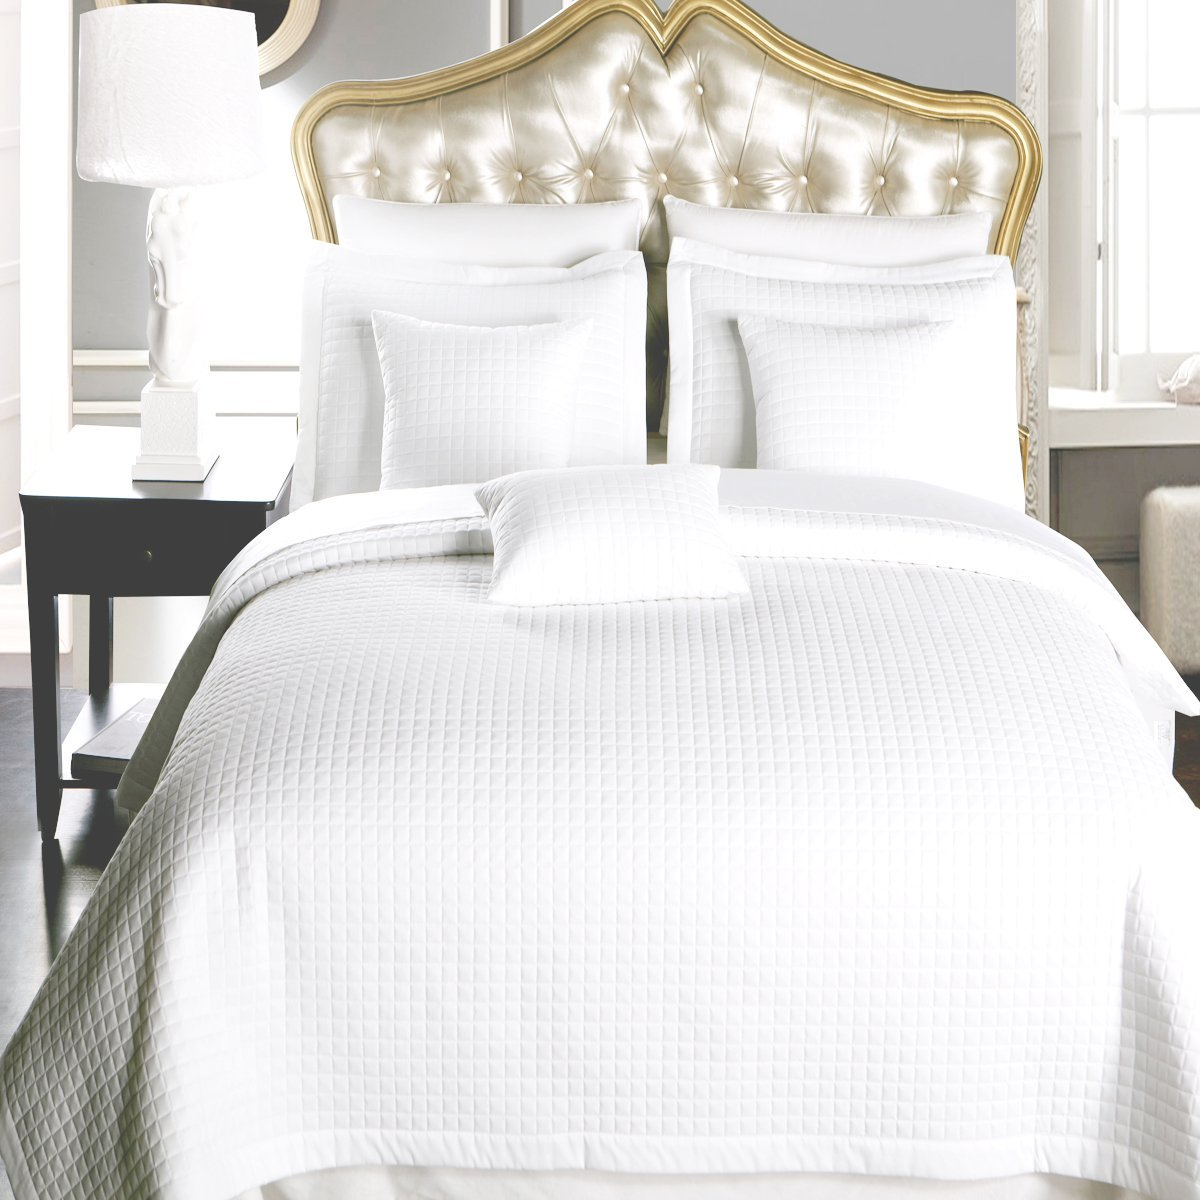 Twin / Twin Extra Long size White Coverlet 2pc set, Luxury Microfiber Checkered Quilt by Royal Hotel